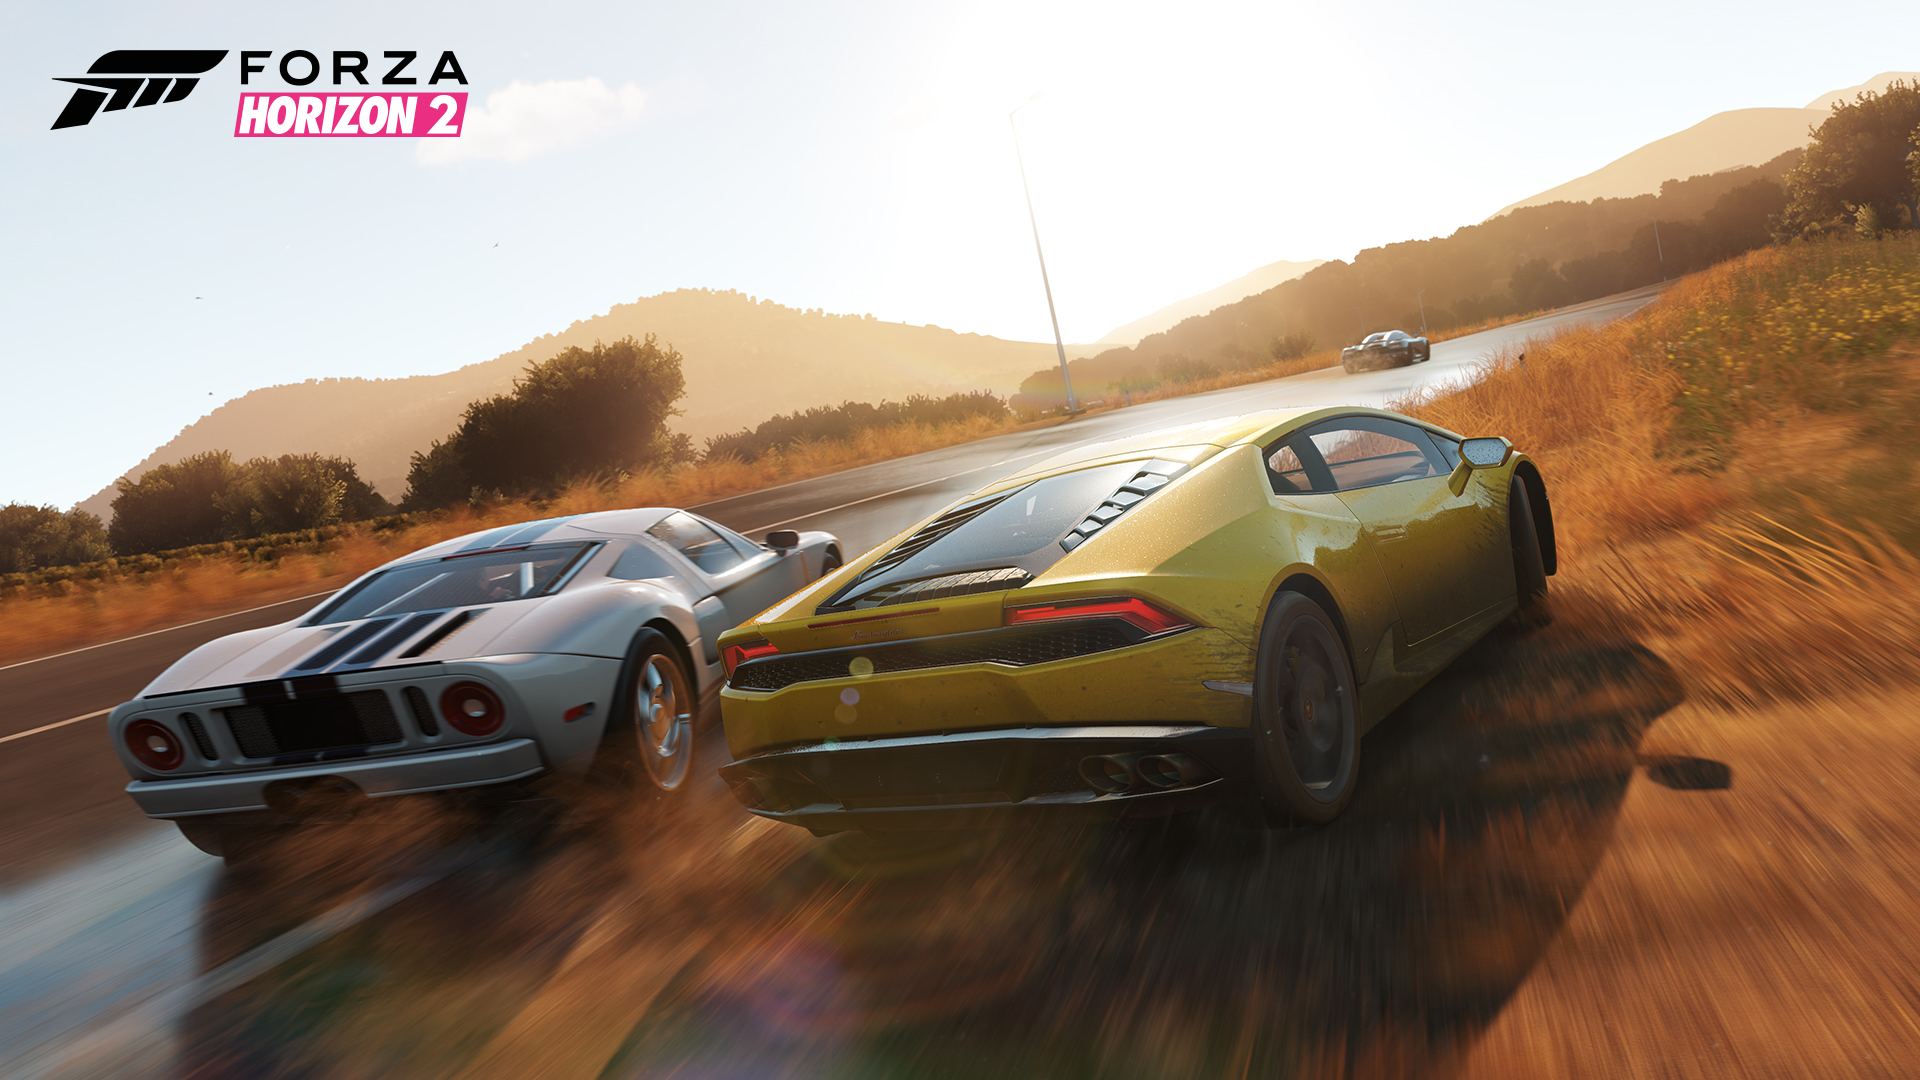 Forza Horizon 2 will be delisted at the end of September